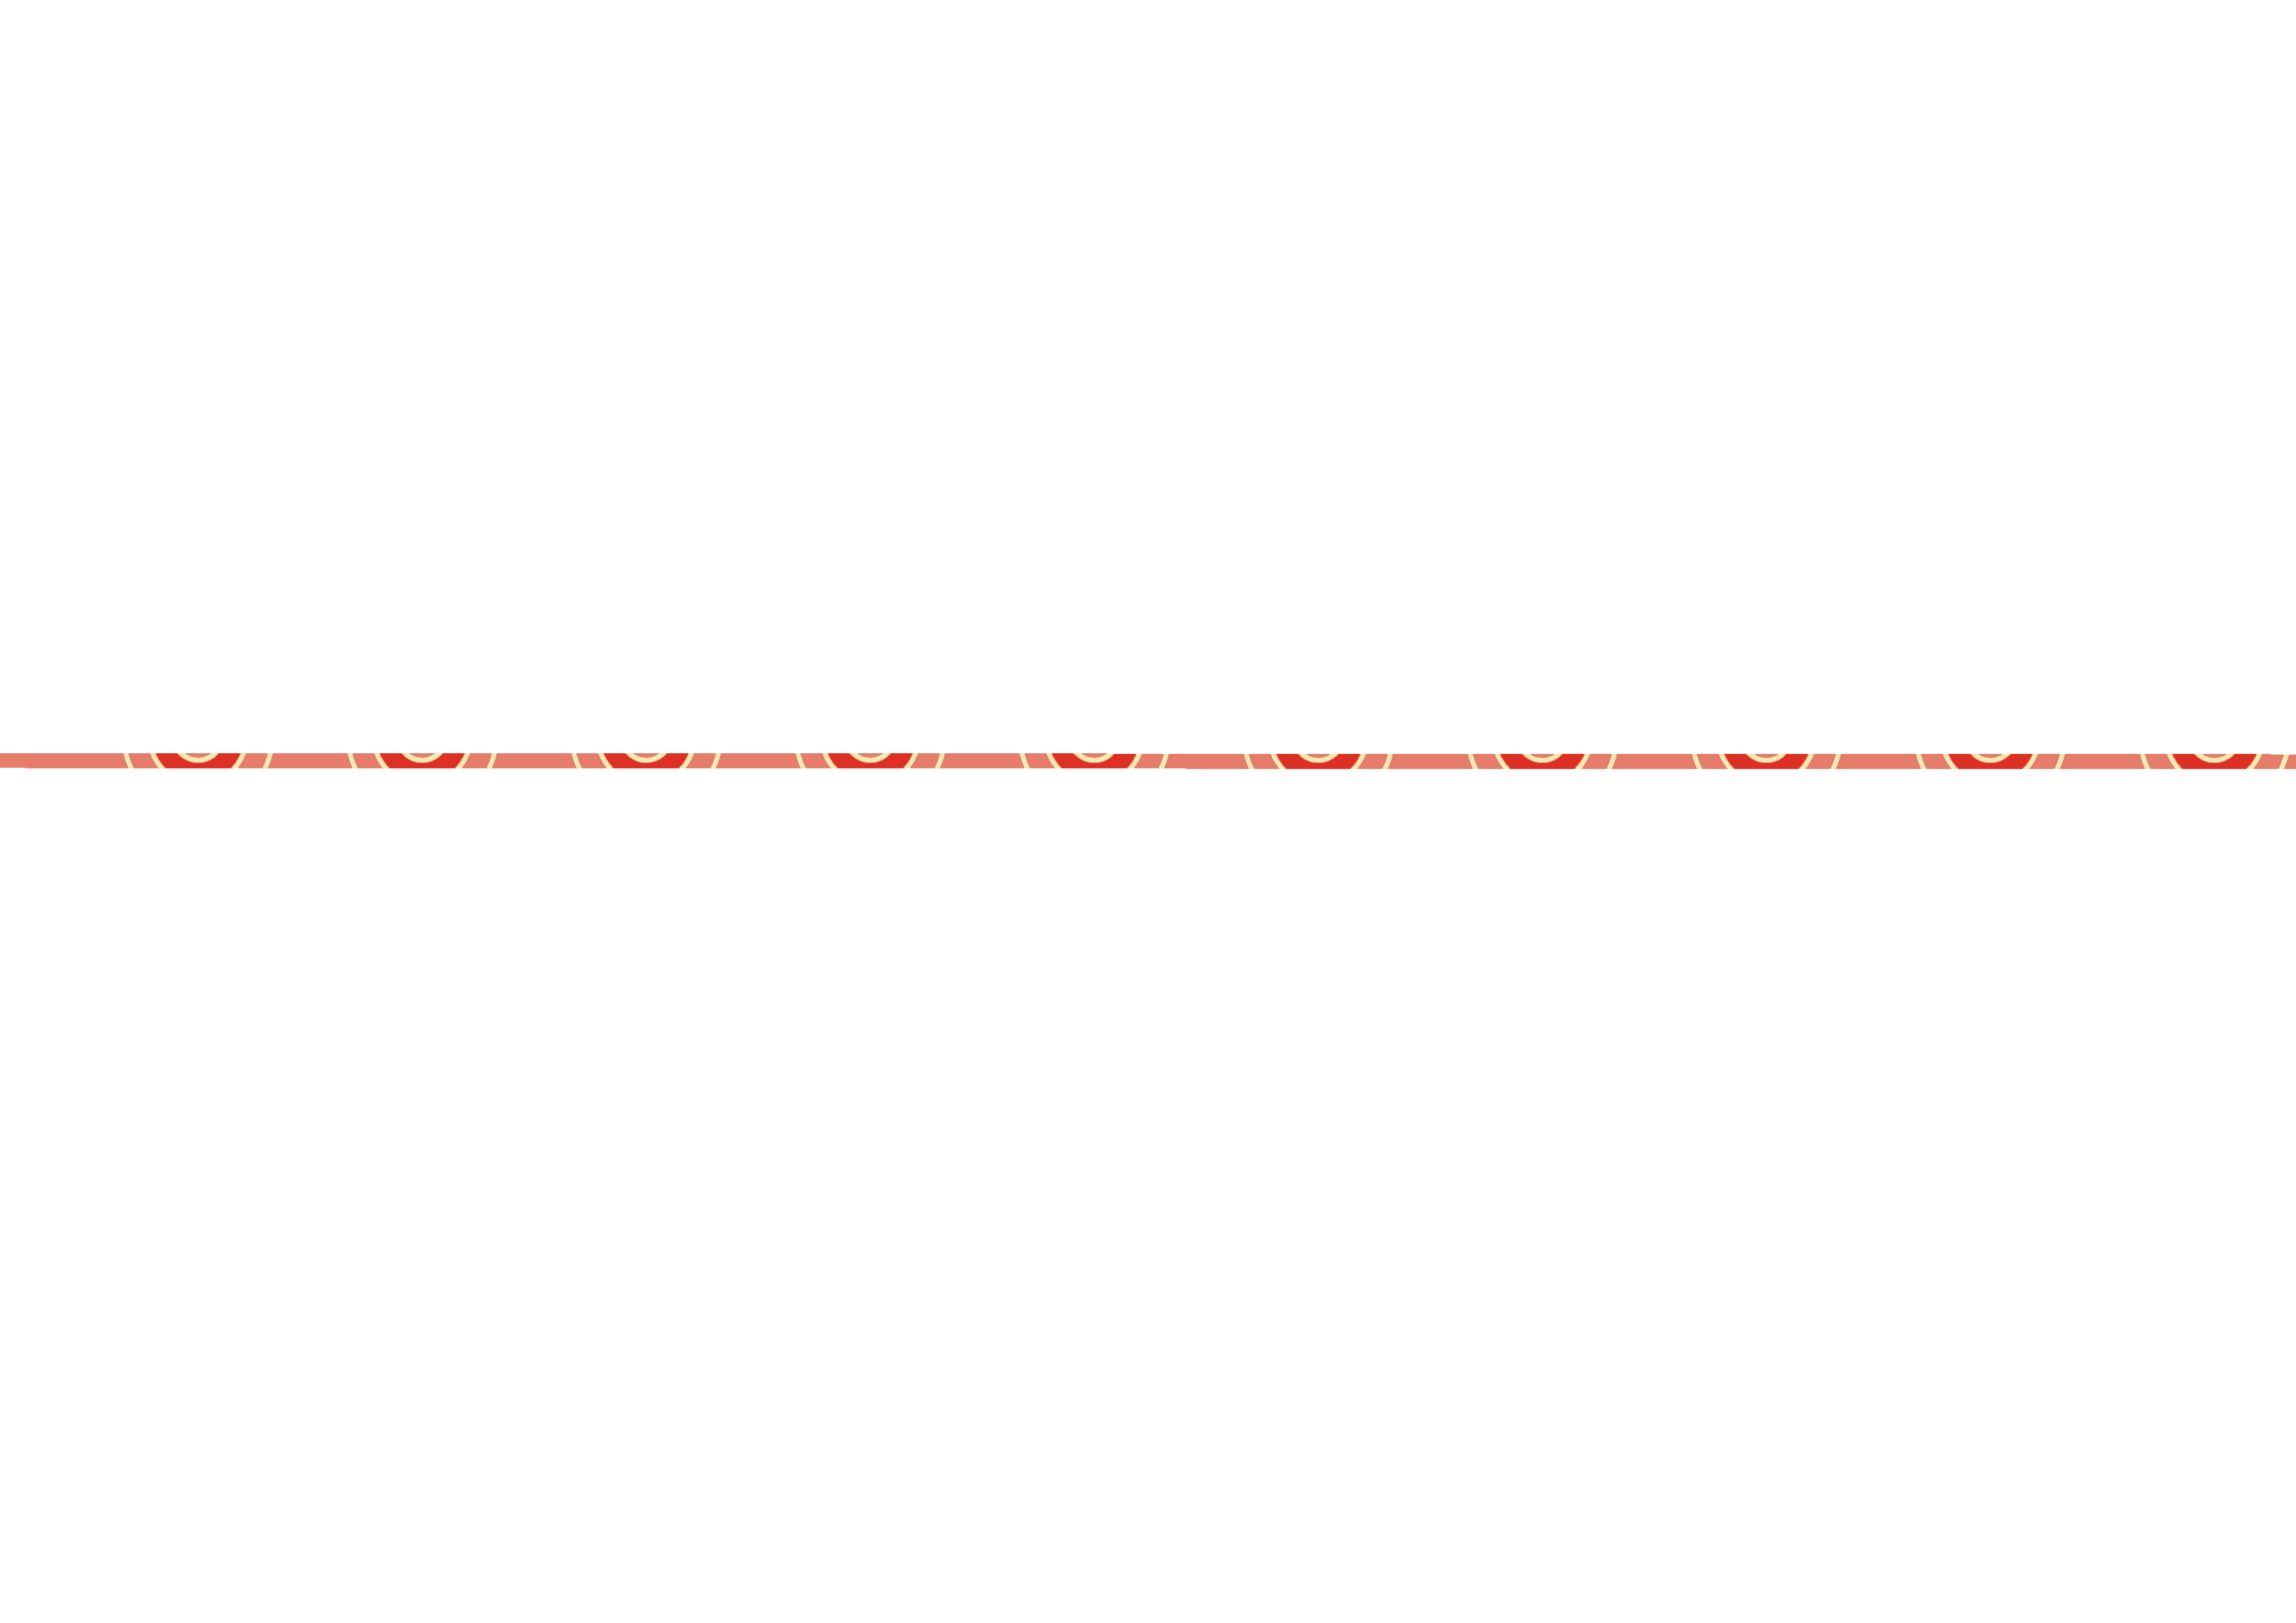 Line coloredited_4.png